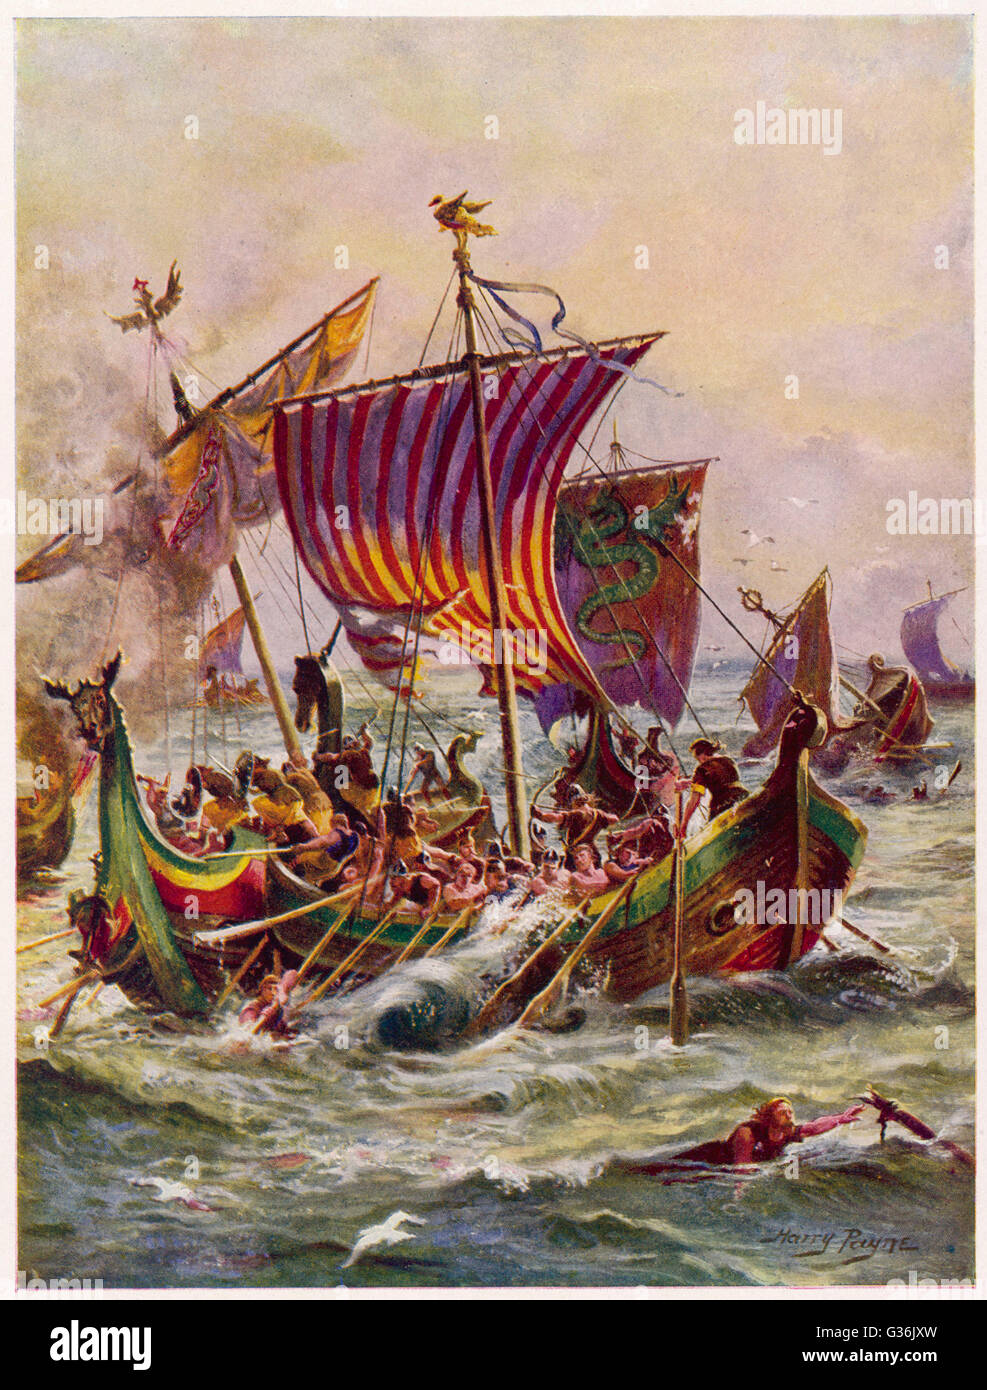 King Alfred's galleys in battle with Vikings.          Date: 897 - Stock Image